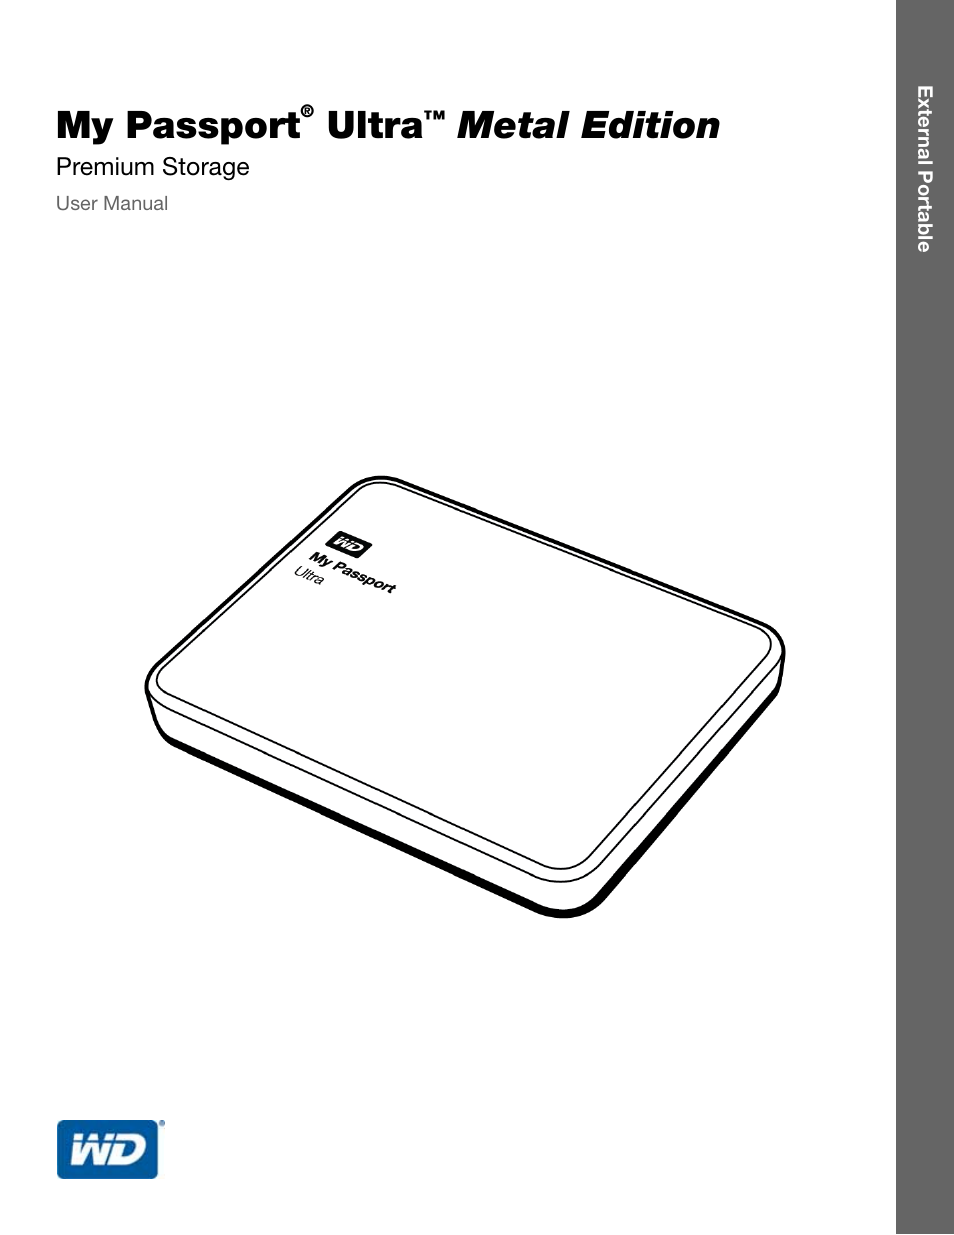 western digital my passport ultra metal user manual user manual 86 rh manualsdir com western digital my passport user manual 1.5TB Western Digital My Passport